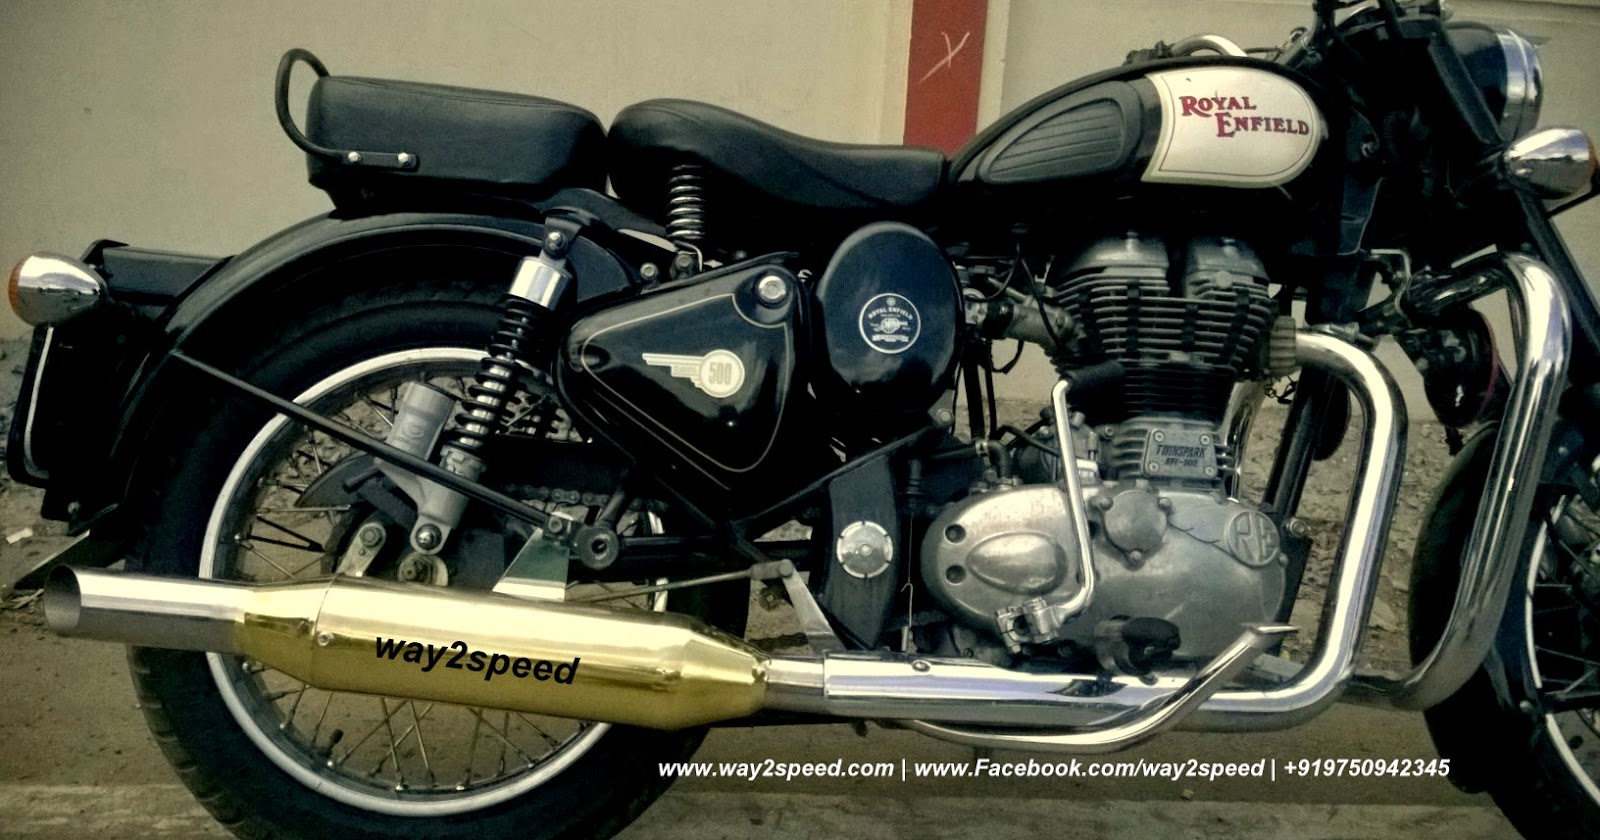 Way2Speed Royal Enfield Rifle Exhaust - Way2Speed Performance-4367